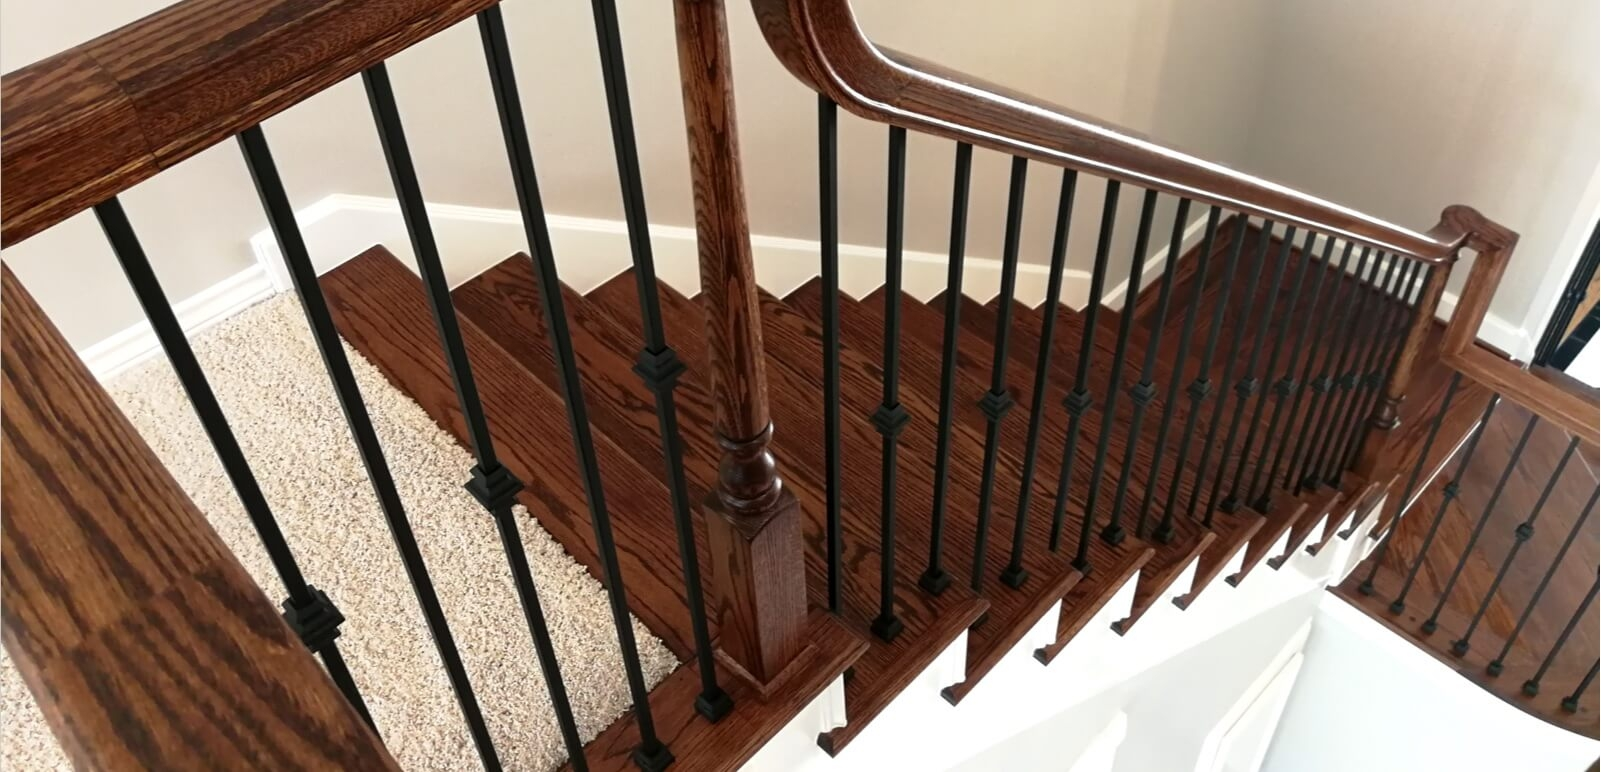 Houston Stair Parts Stair Remodel Iron Balusters Railing | Staircase Companies Near Me | Wrought Iron Balusters | Stair Remodel | Stair Parts | Stair Stringers | Stair Railing